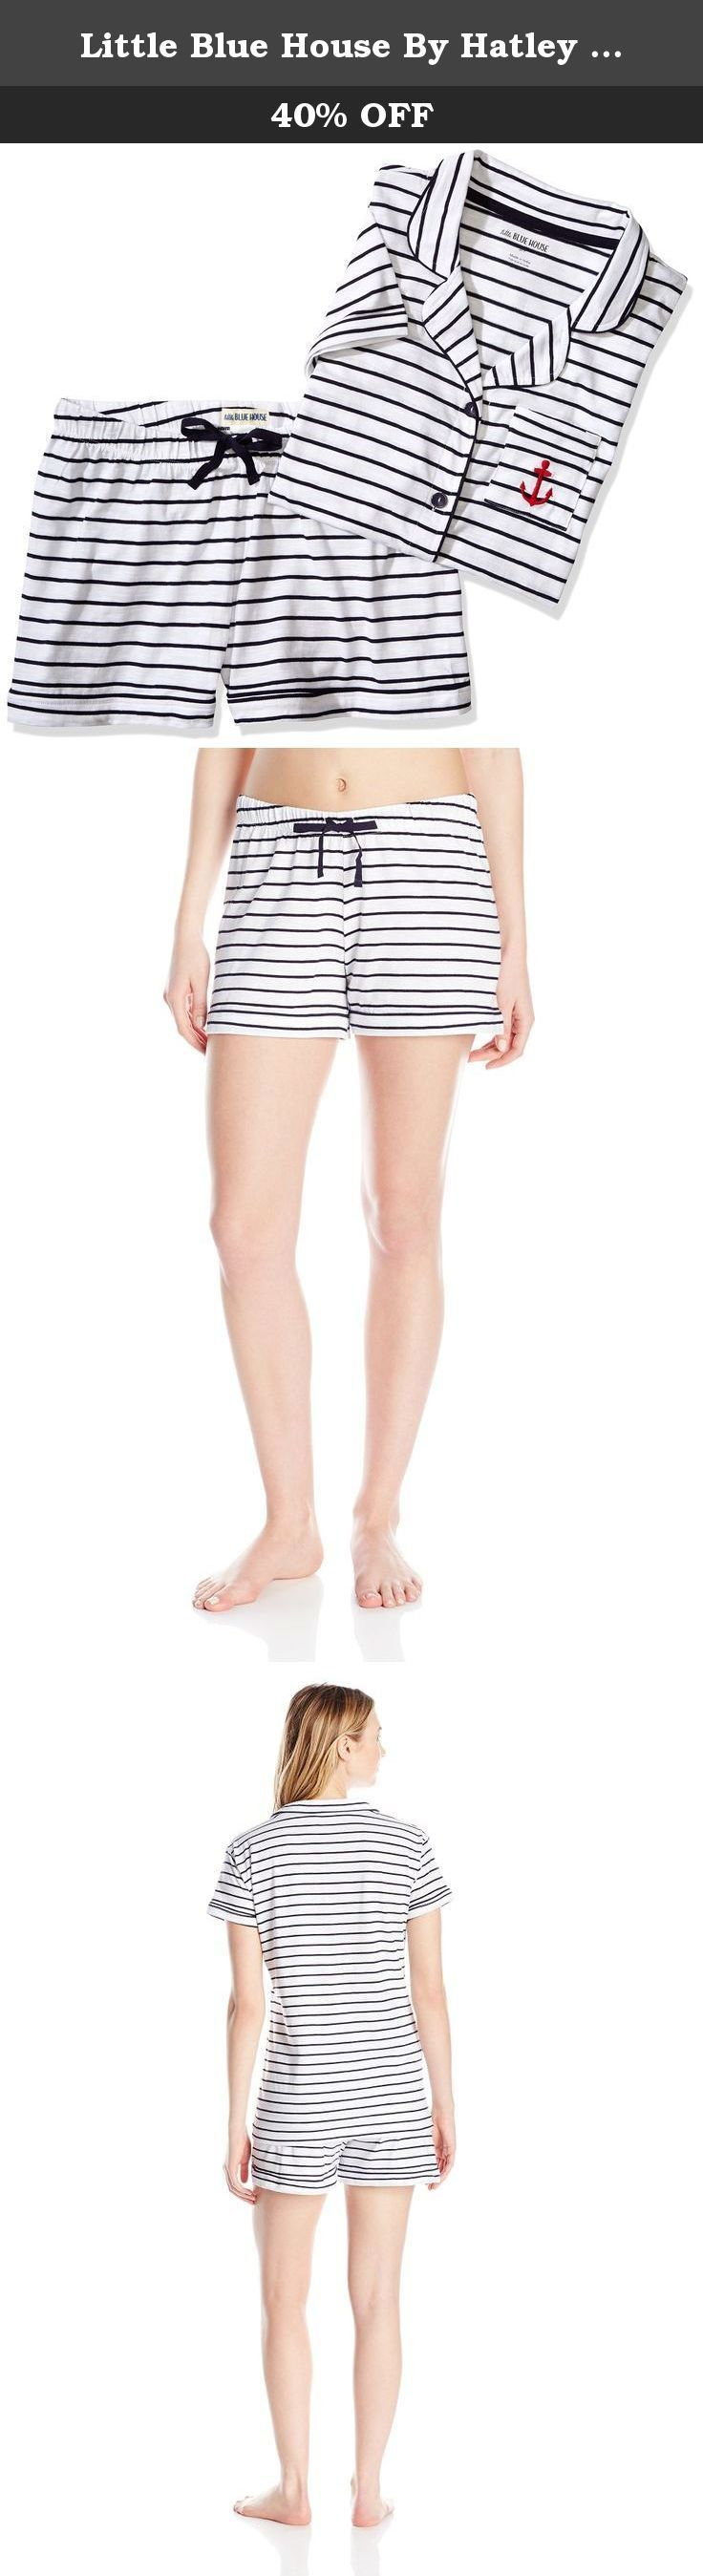 Little Blue House By Hatley Women's LBH Ladies Pajama Tee Set - Nautical Stripe Set,Nautical Stripes, Large. The classic pajama shirt reinvented with contrast trim, button front and handy chest pocket. Perfectly paired with our drawstring boxer shorts also contrast trim.